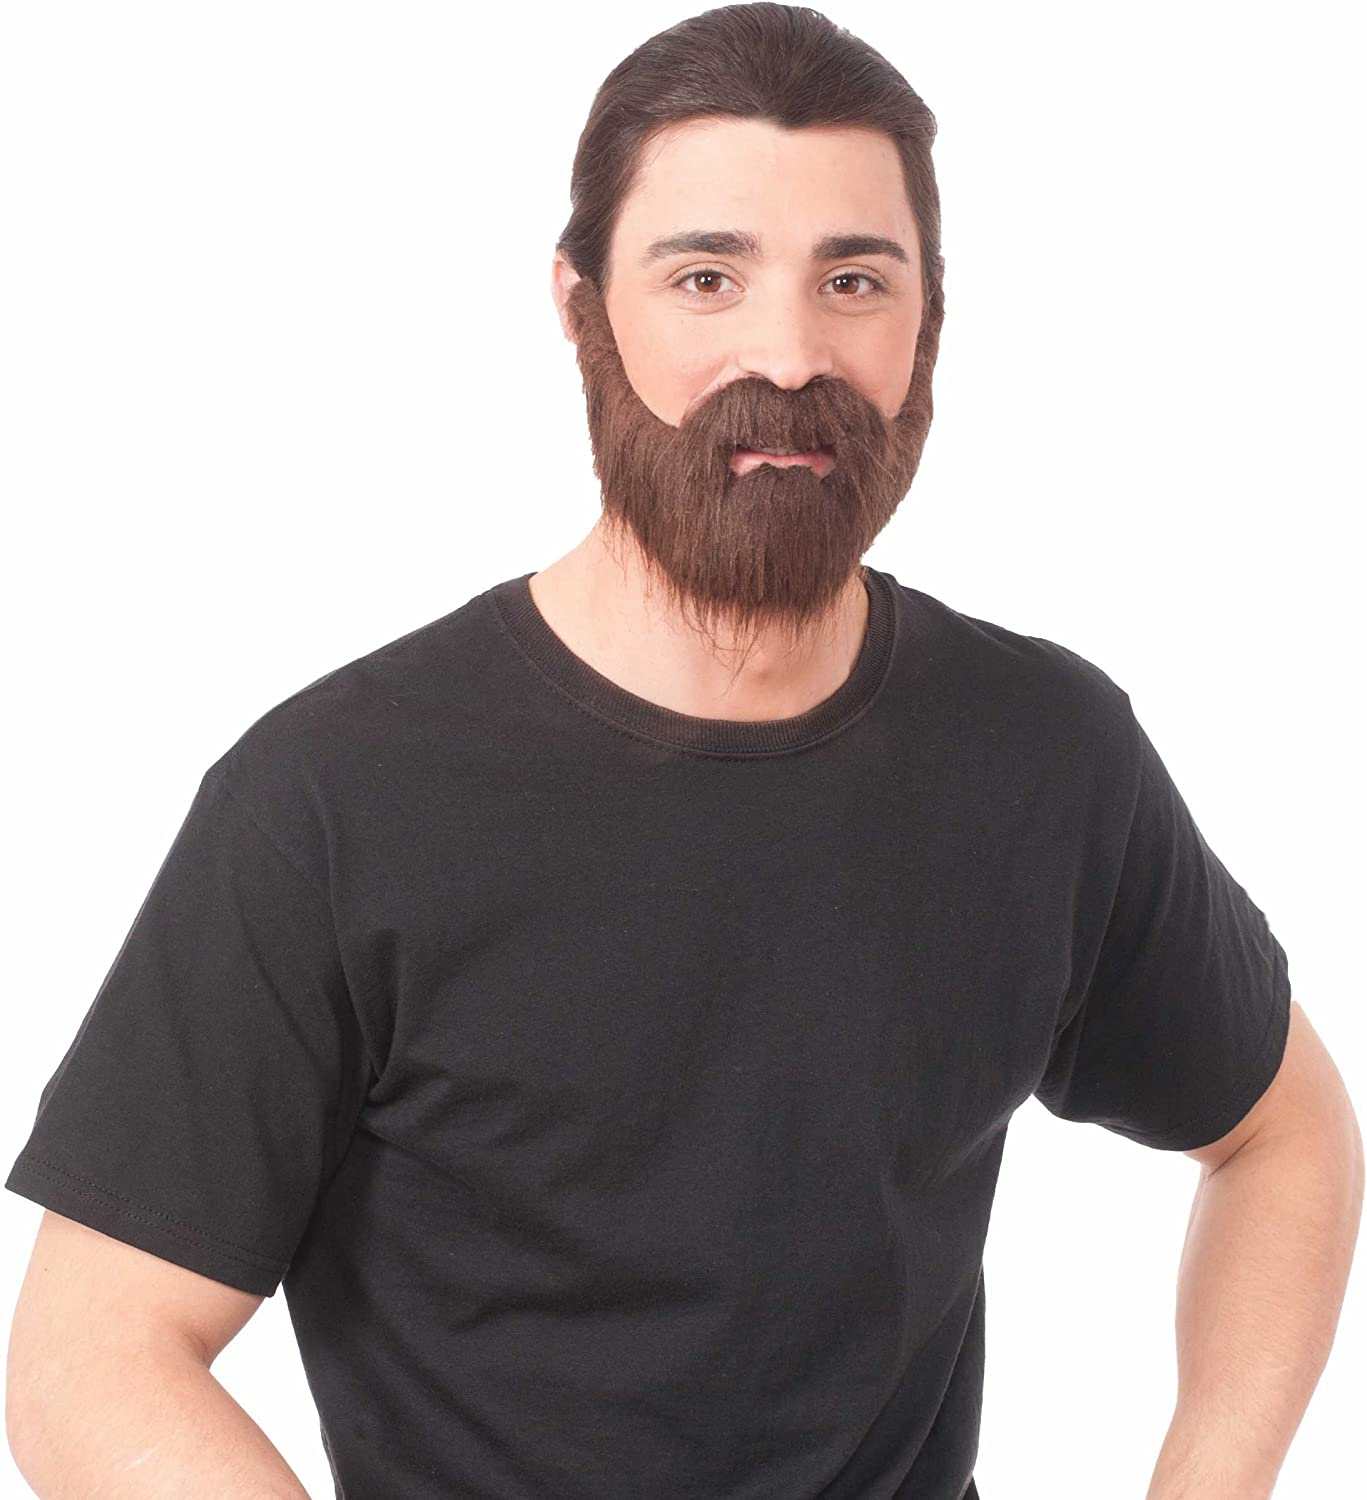 Amazon Com Forum Novelties 73600 Full Brown Beard With Moustache One Size Pack Of 1 Toys Games